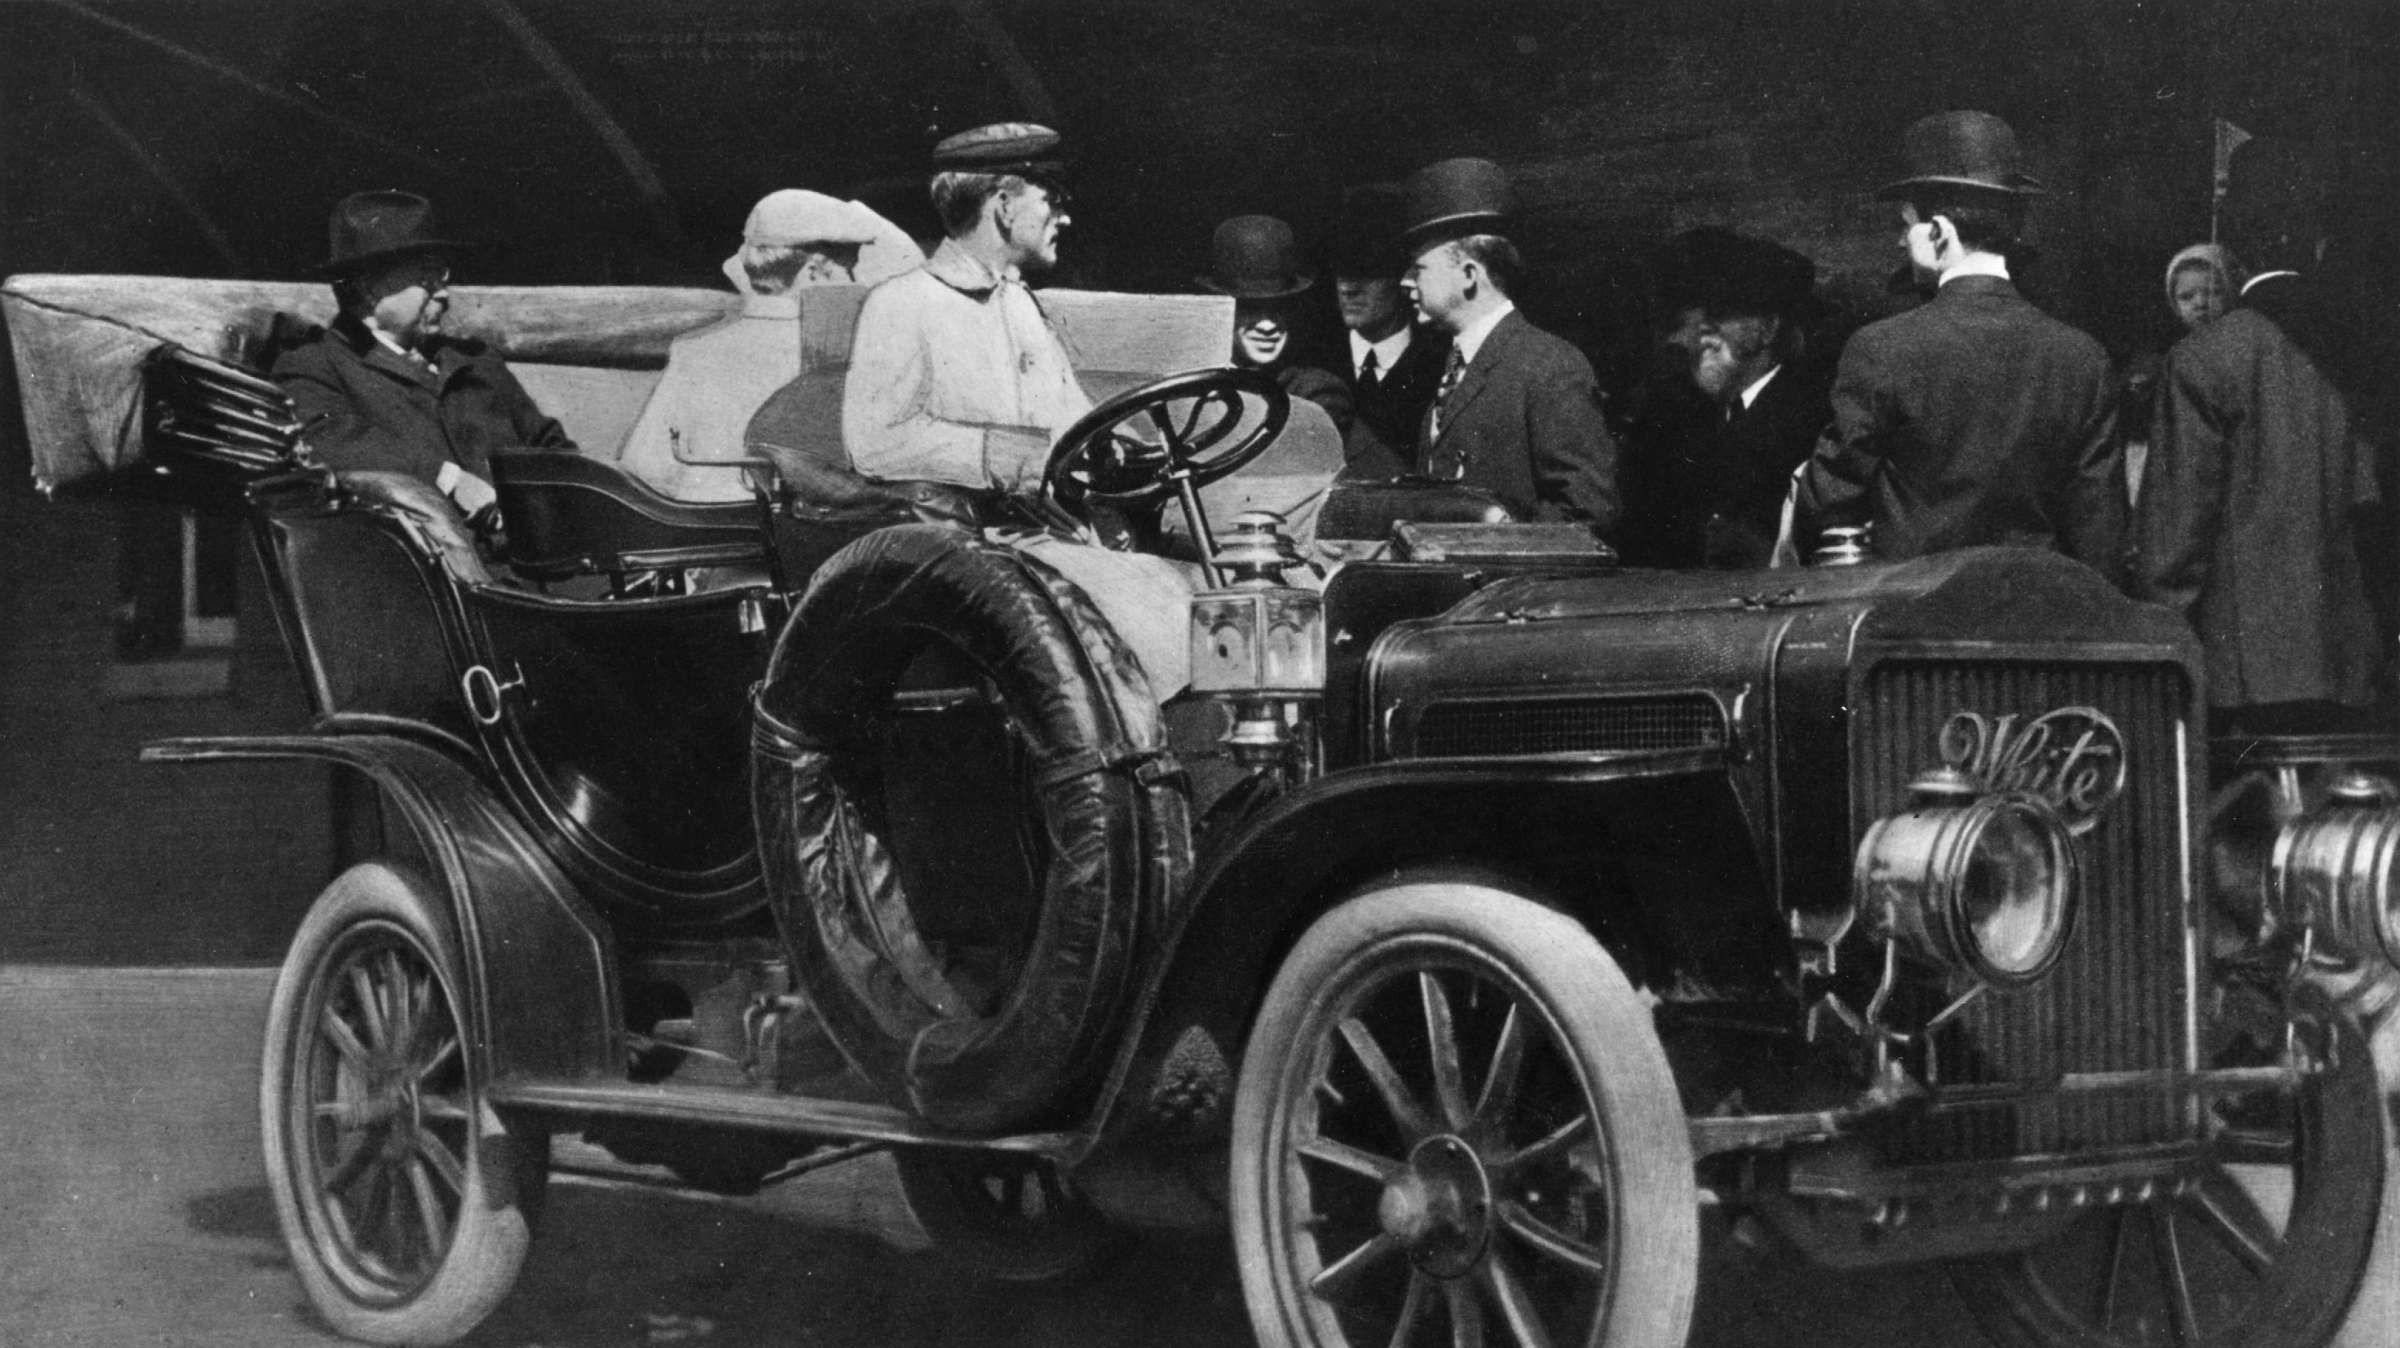 Theodore Roosevelt and the First Presidential Car Ride